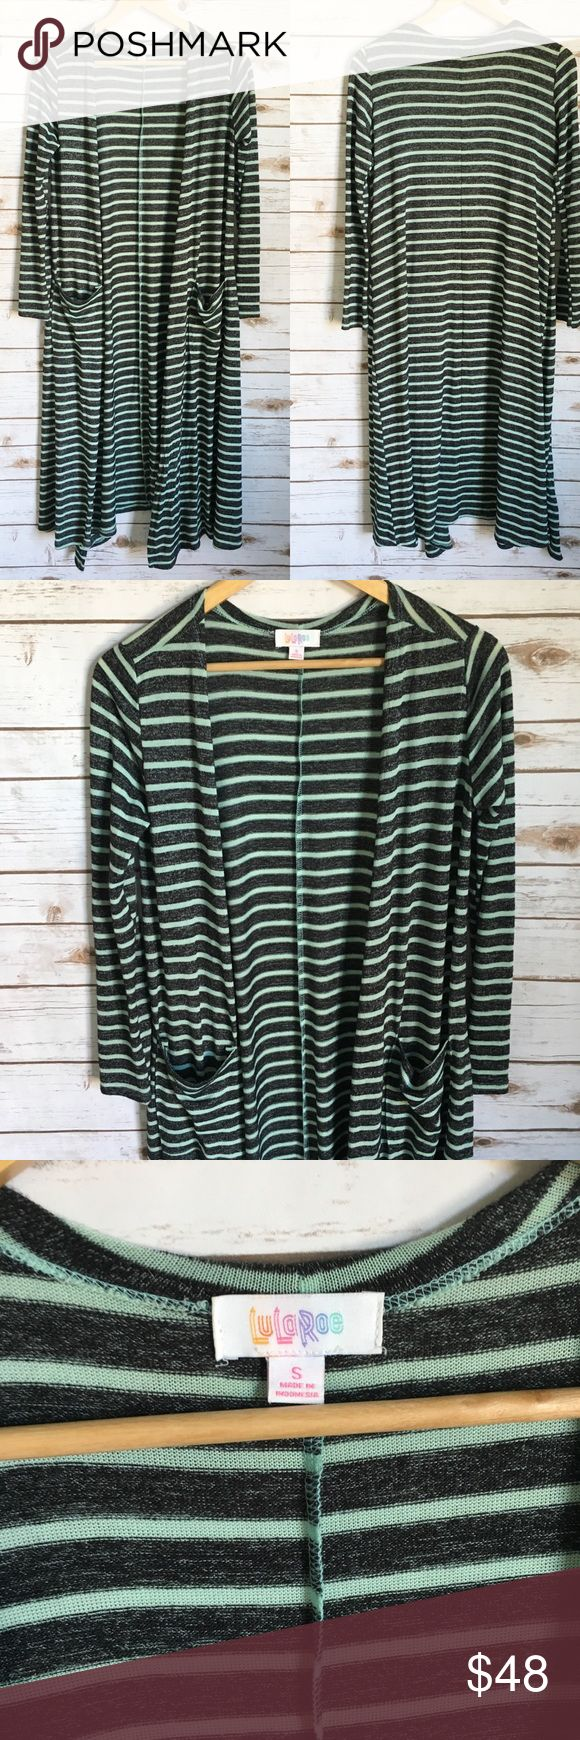 LuLaRoe Gray Stripe Sarah LuLaRoe Gray Stripe Sarah Gray and a mint teal stripe. Excellent used condition, a little wrinkled from being tied but other than that it's amazing. Bundle and save with my other LLR items. LuLaRoe Sweaters